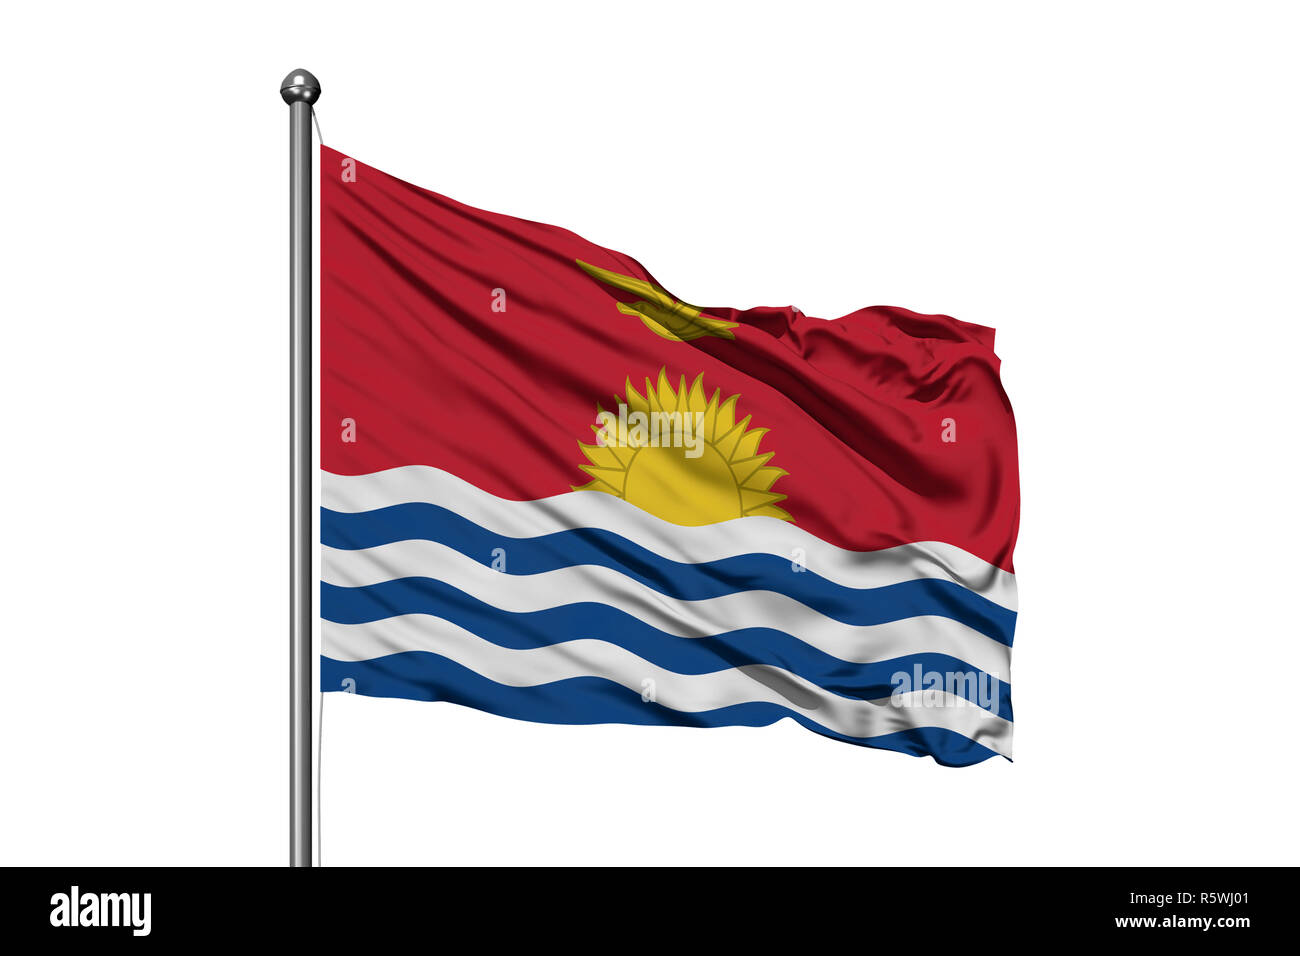 Flag of Kiribati waving in the wind, isolated white background. - Stock Image